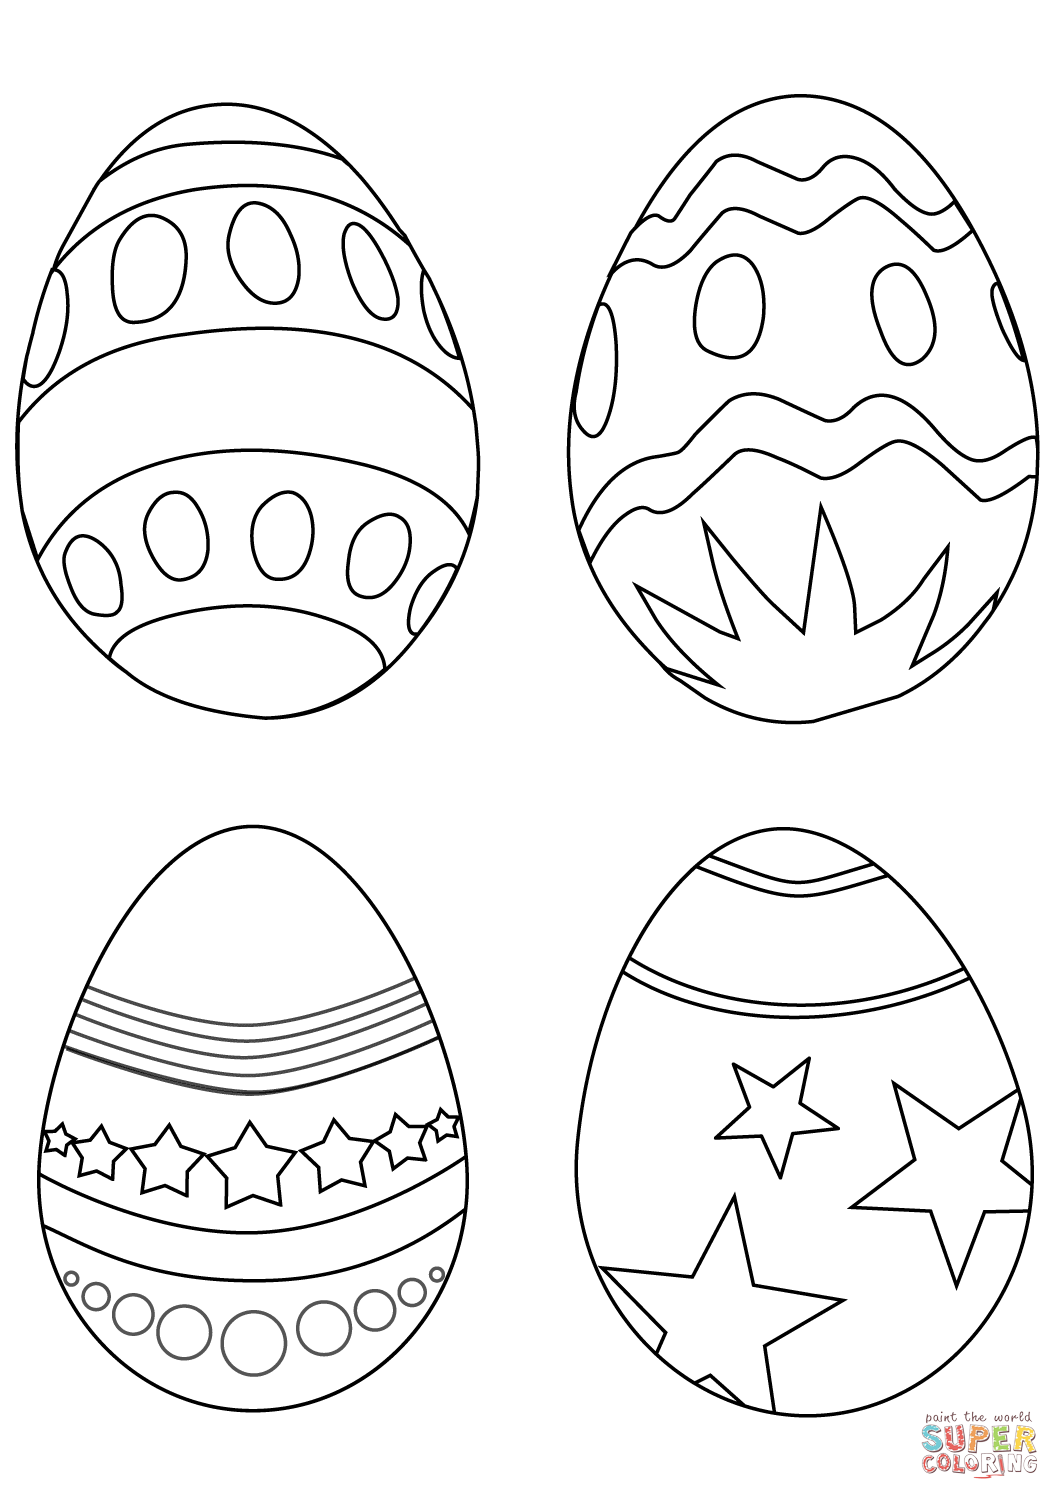 Simple Easter Eggs Coloring Page Free Printable Coloring Pages Coloring Easter Eggs Easter Egg Coloring Pages Easter Coloring Book